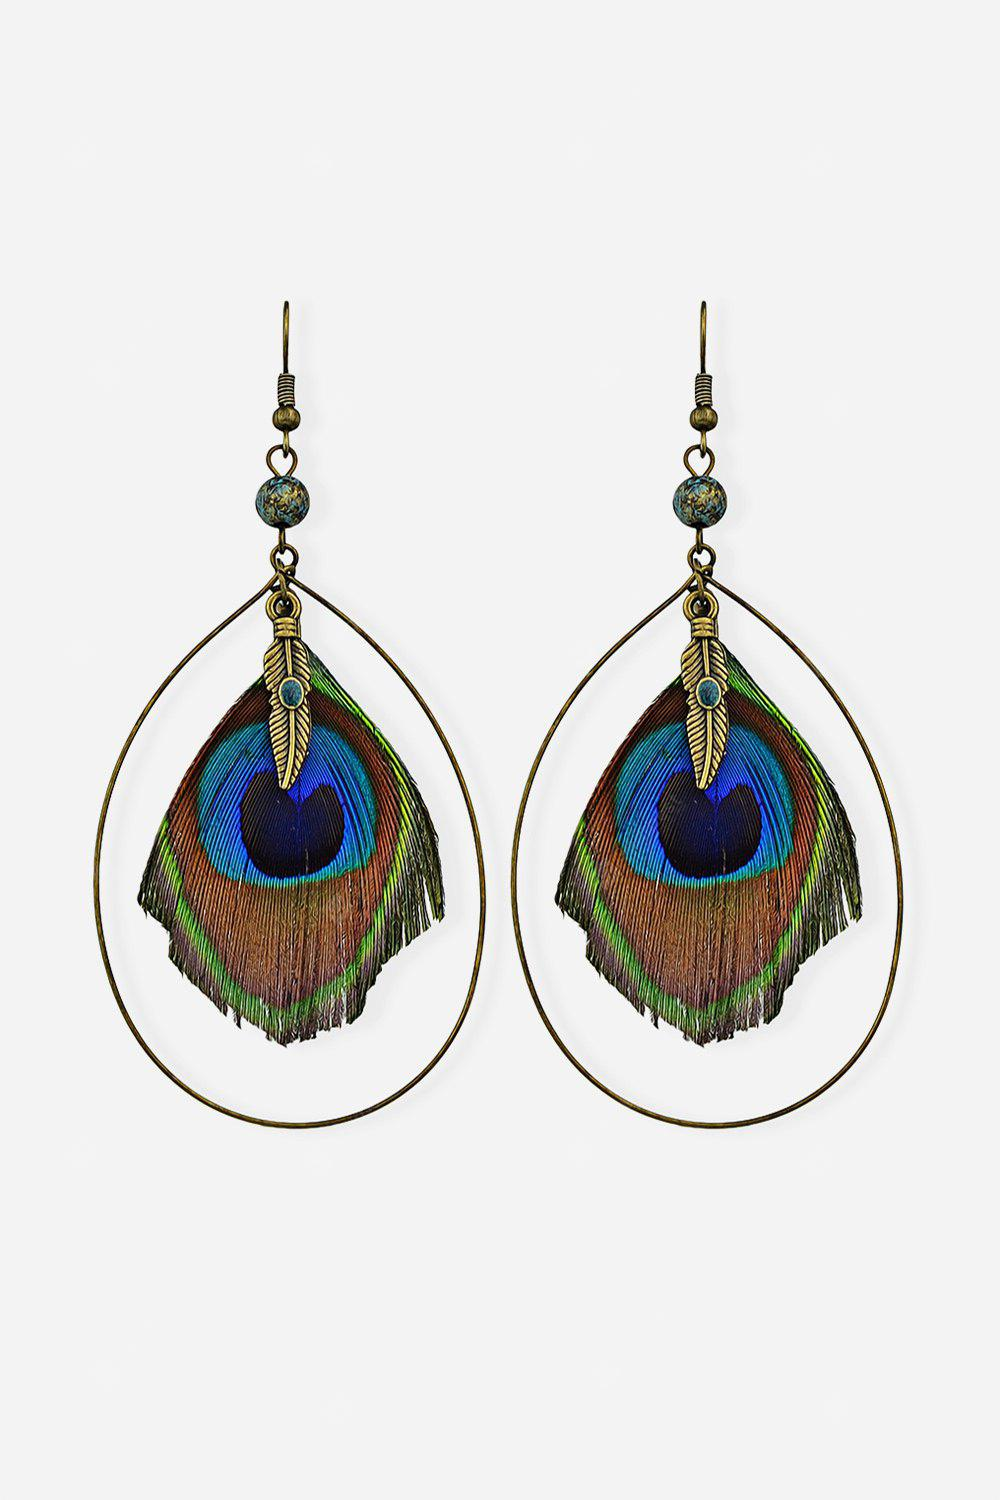 Earrings with Feather in Cycle